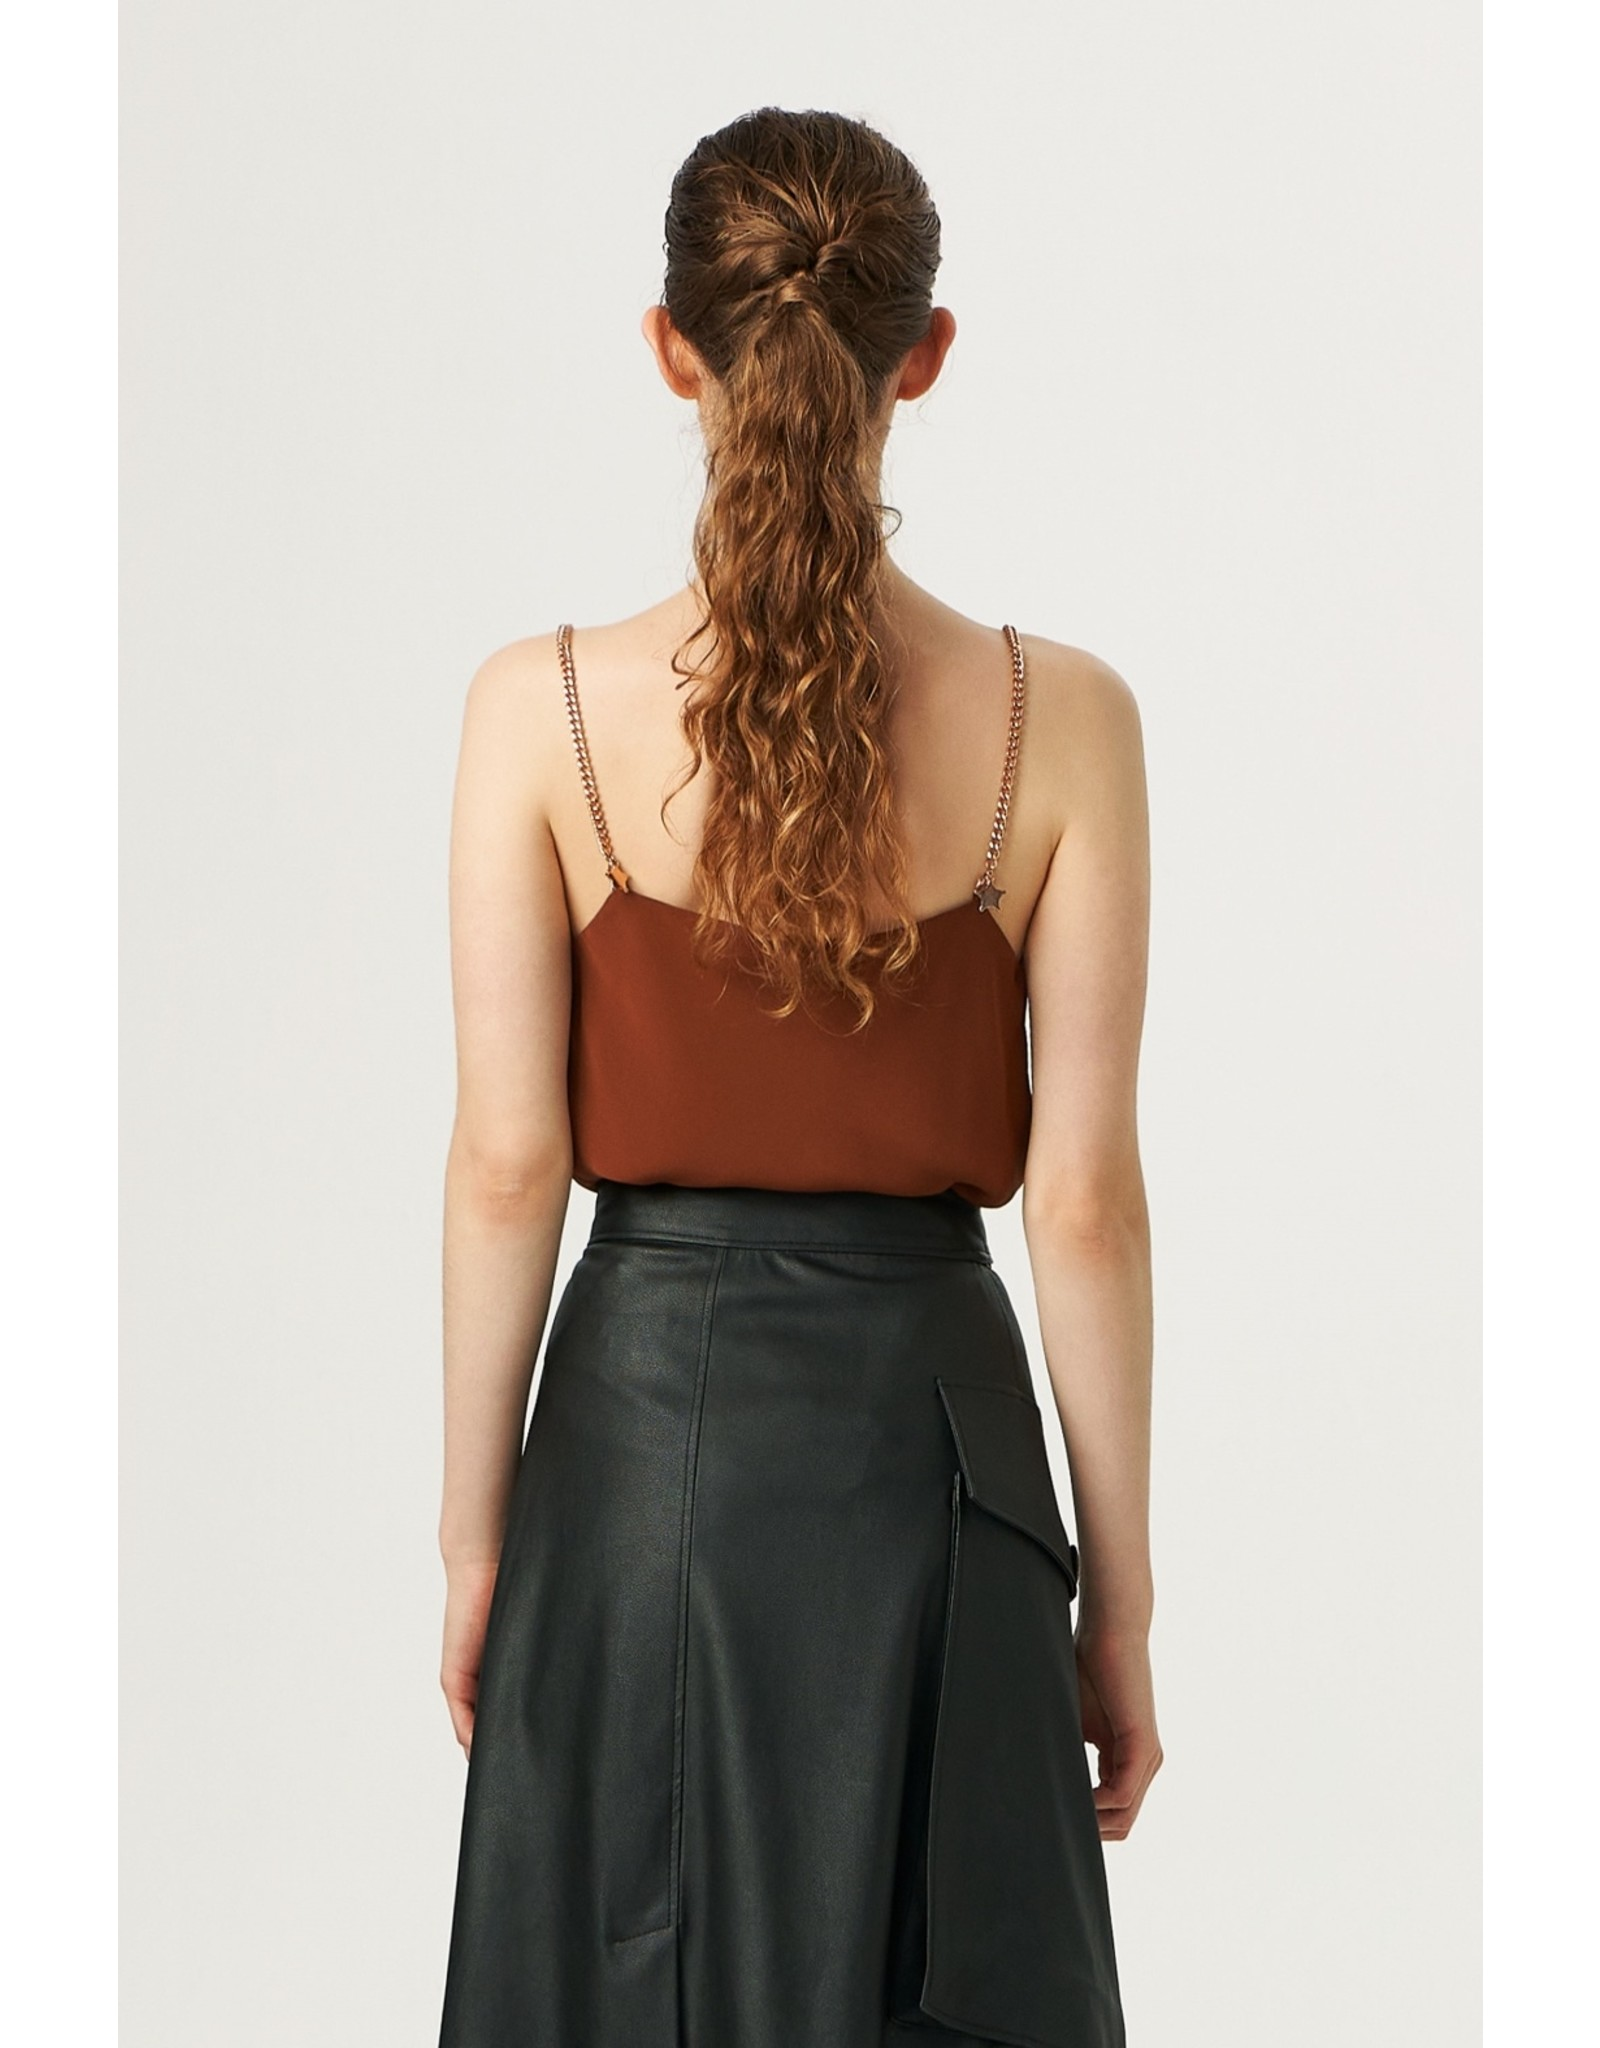 Exquise Cami top with Chain Strap